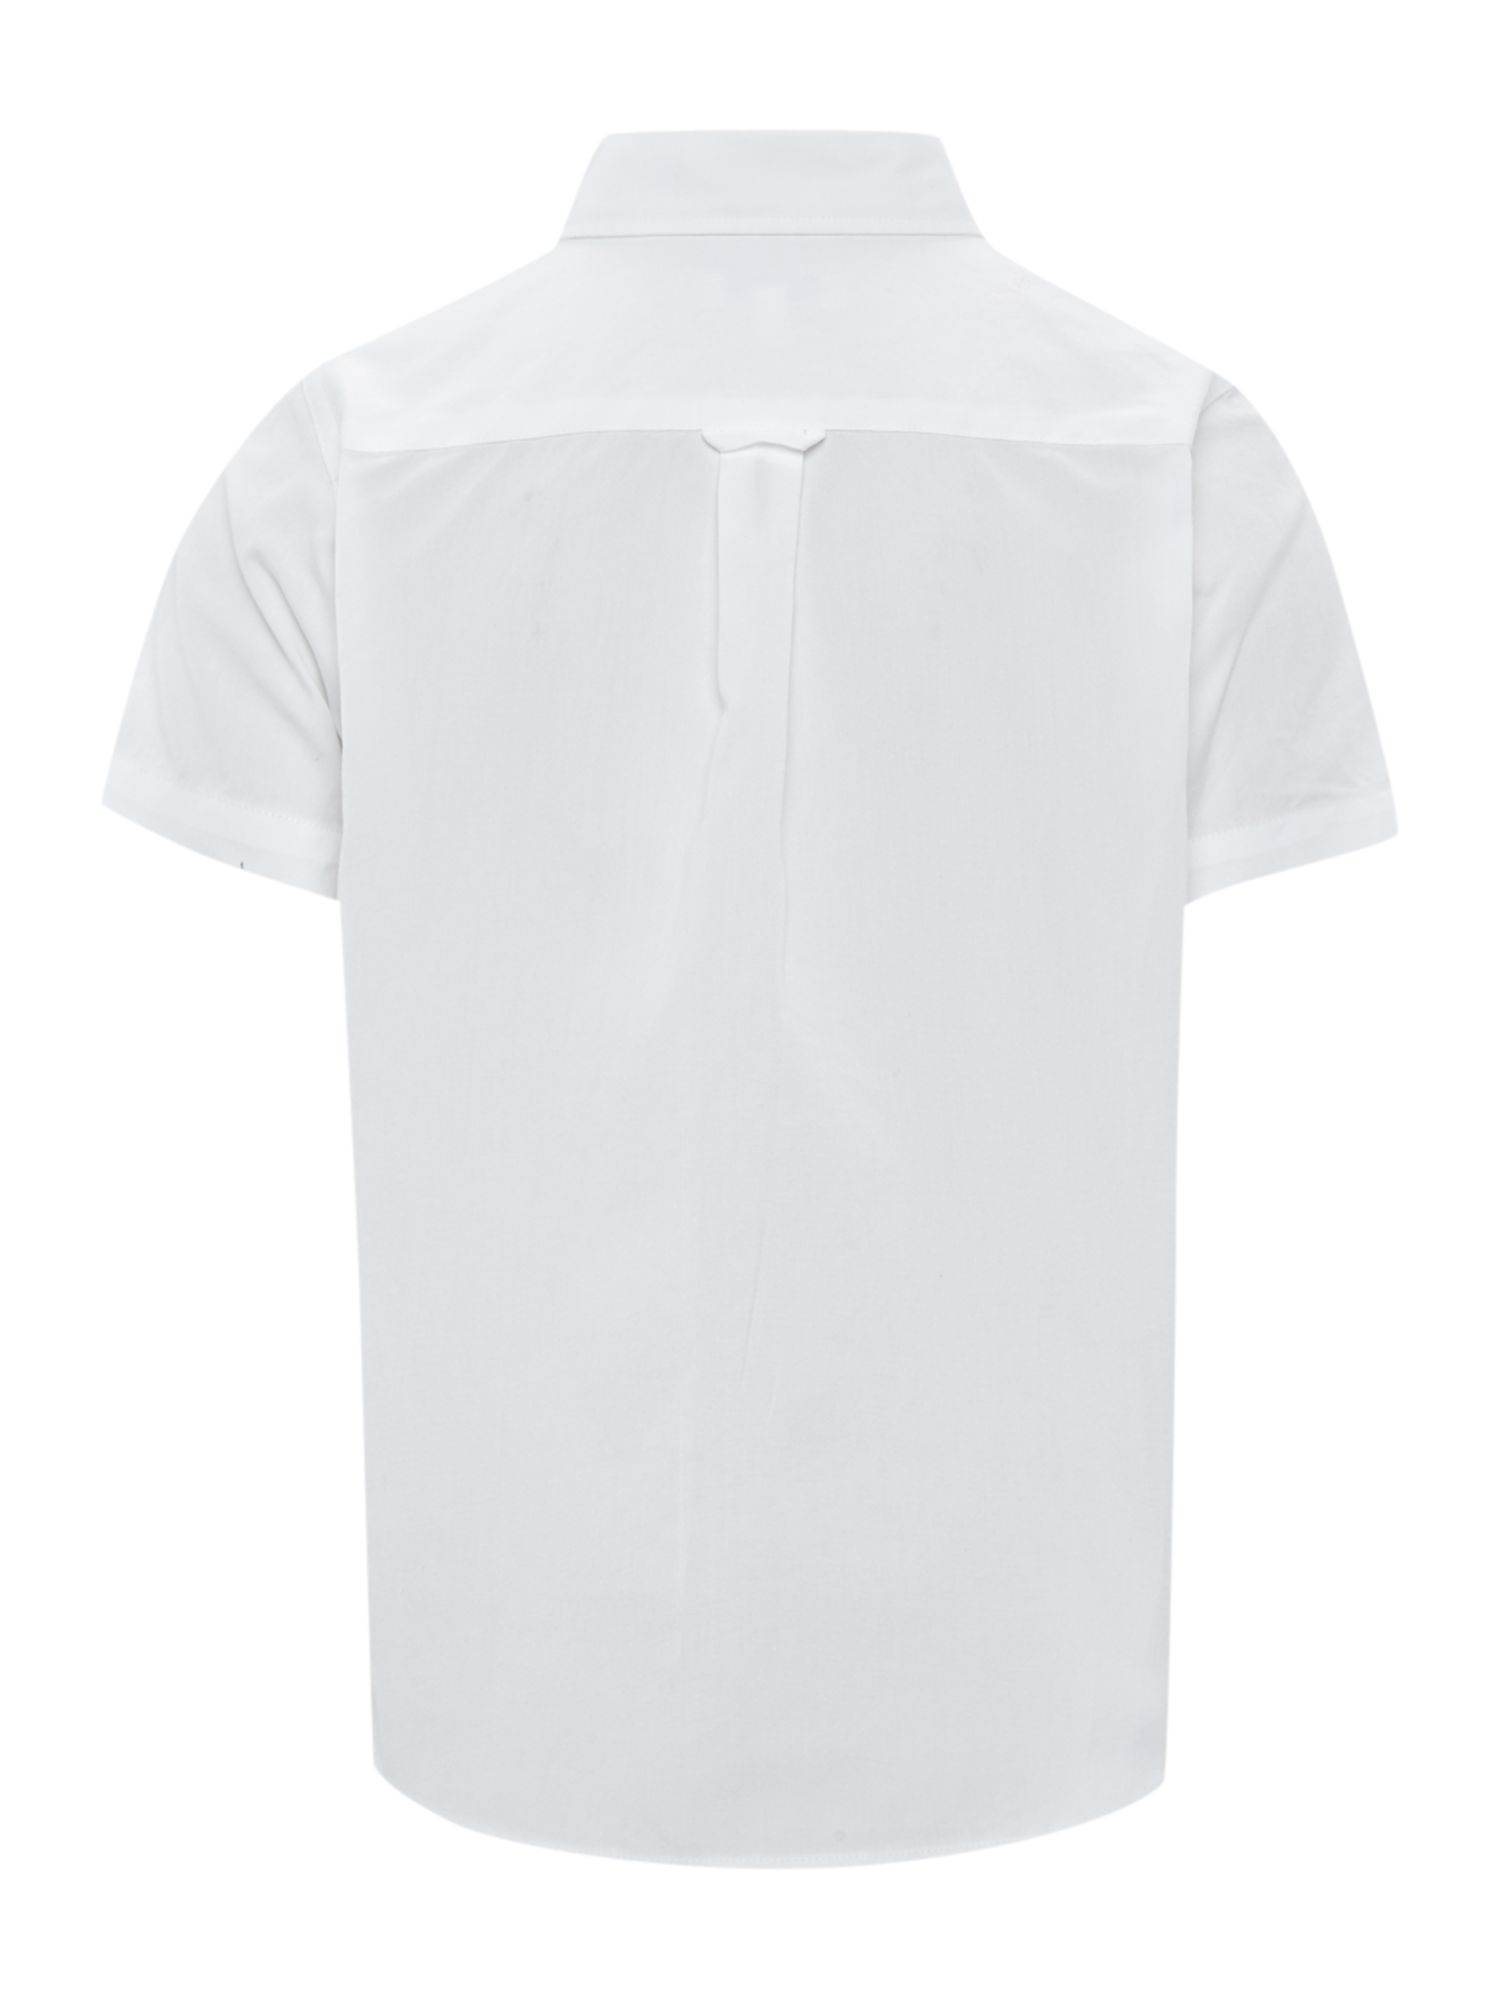 Boys classic pocket white shirt